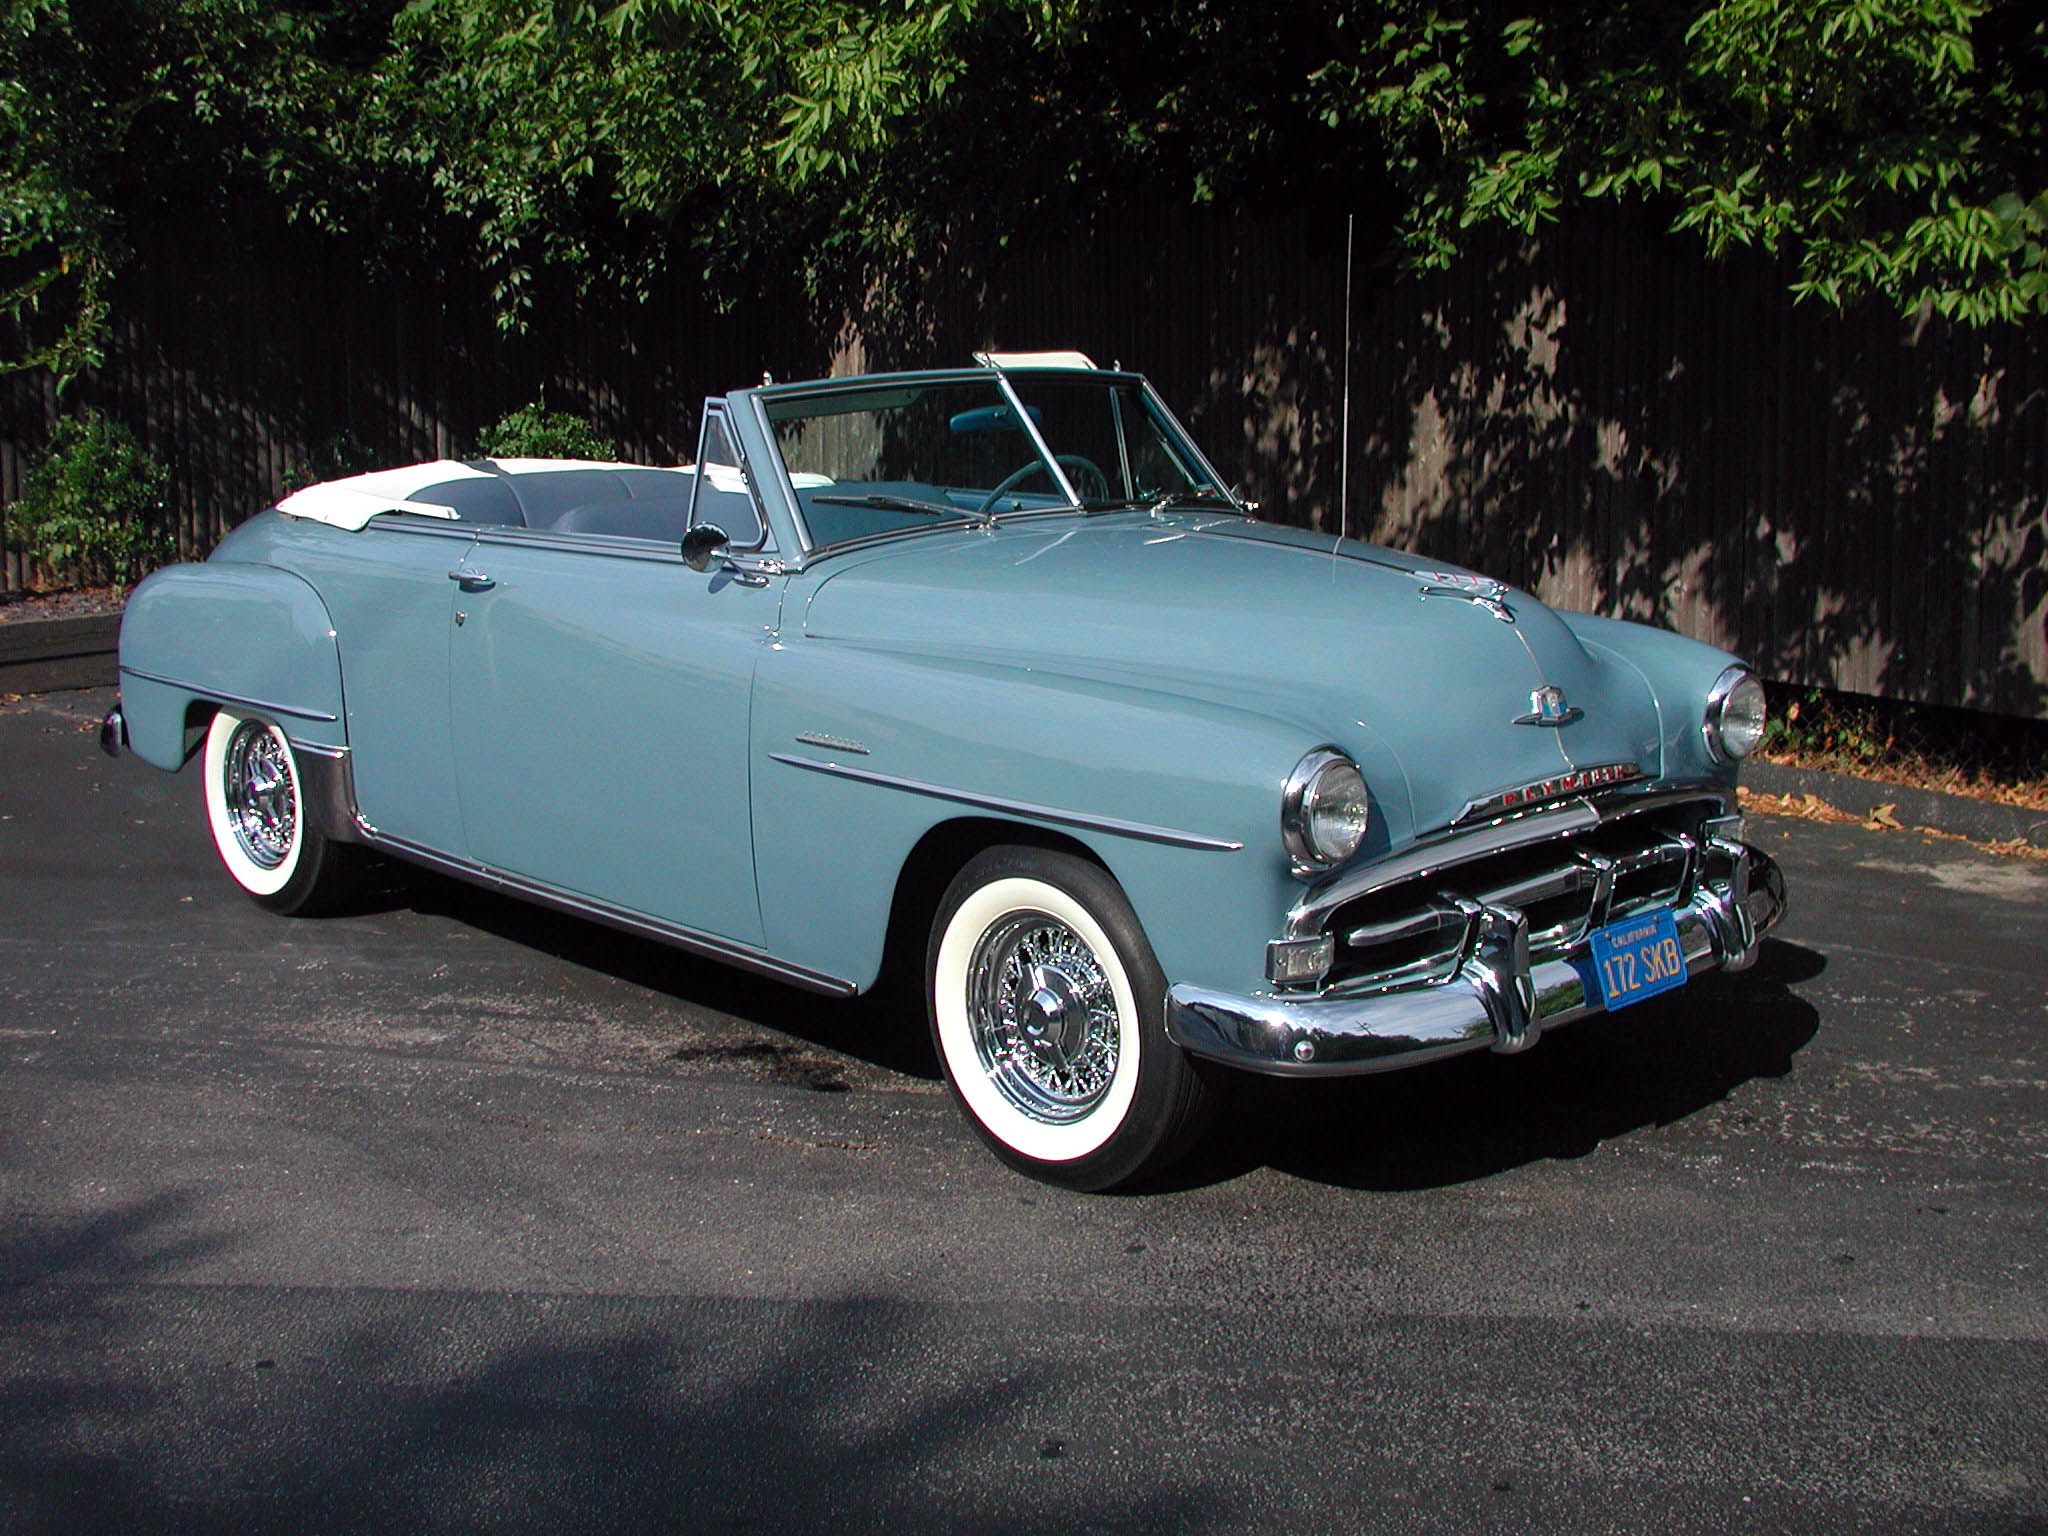 1952 Plymouth Convertible We had one of these but the colour was